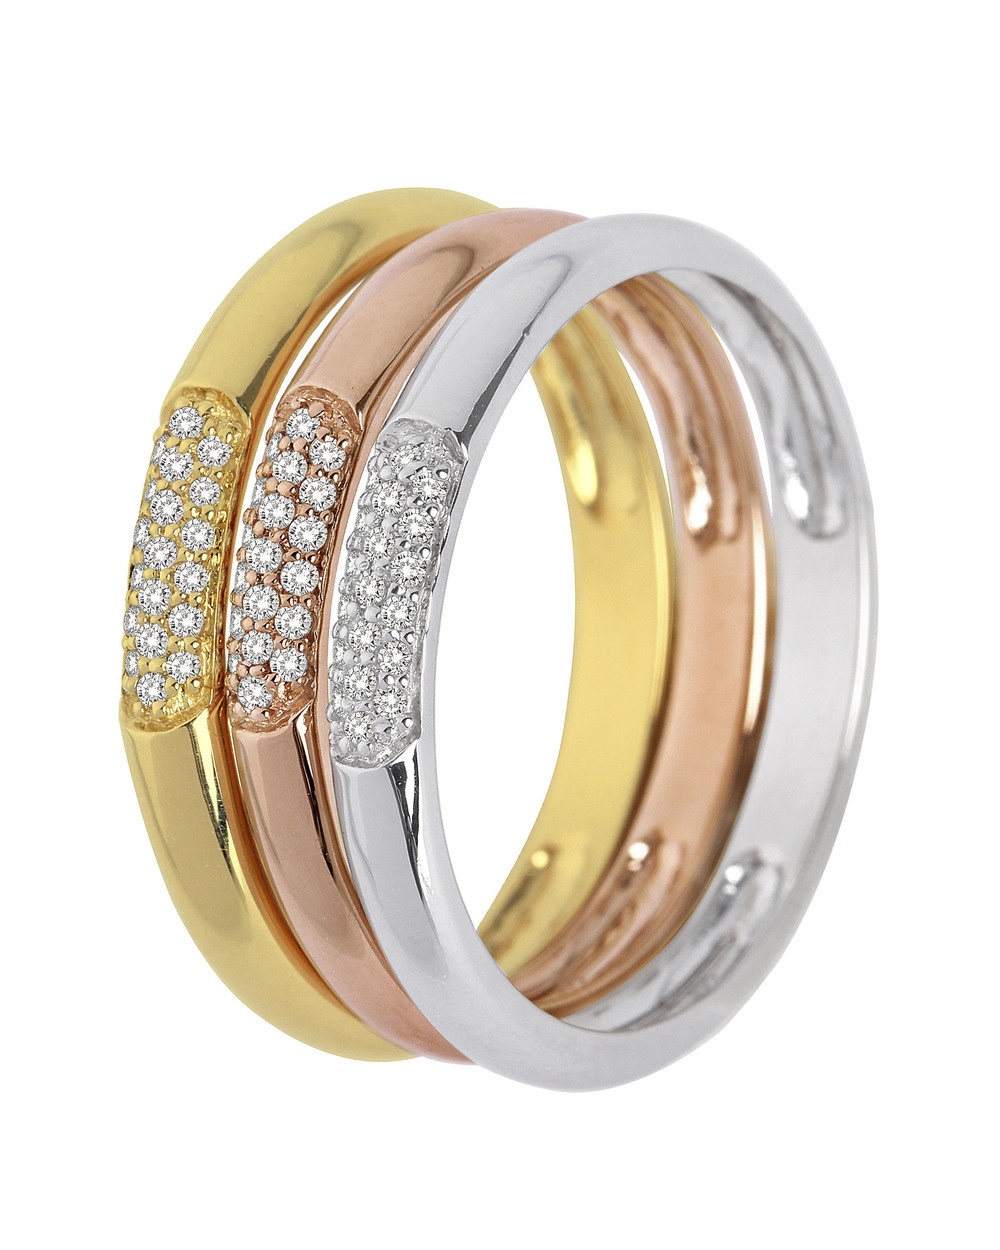 VALERIA, Ring aus 375 Tricolor Gold mit 0 18 Karat Diamanten 52